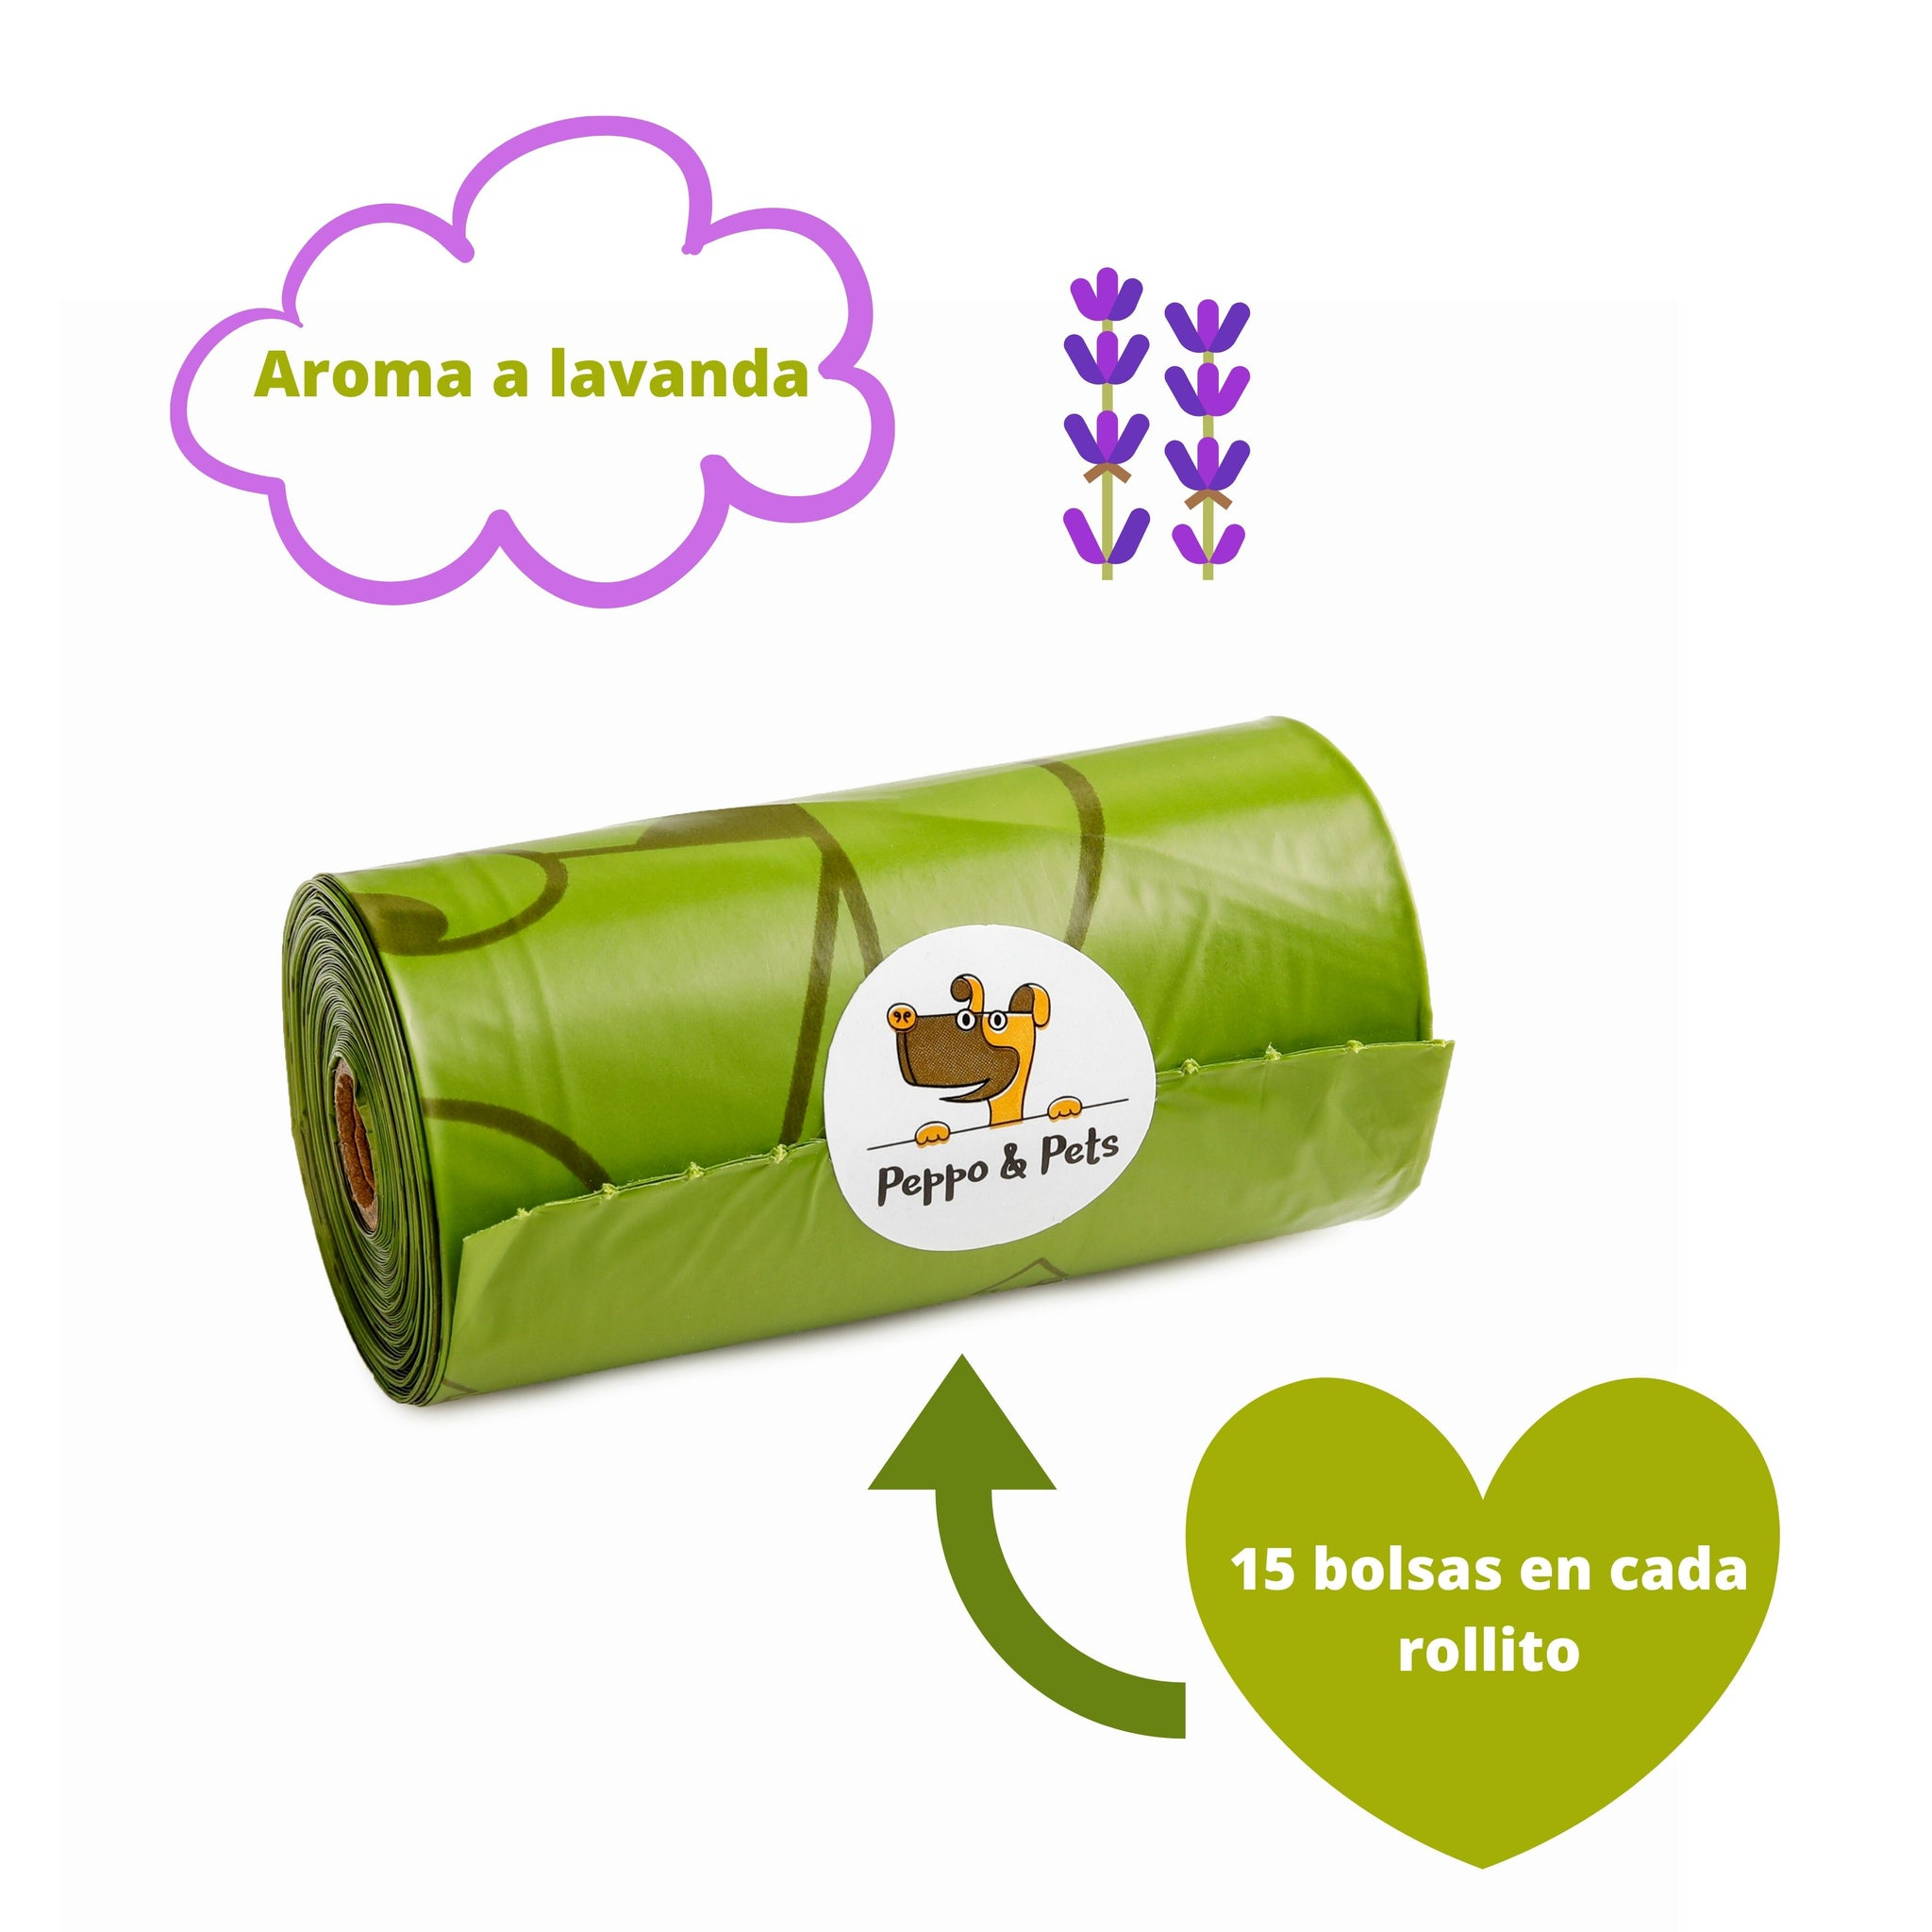 Caja con 240 bolsas biodegradables (16 rollos) + 1 dispensador